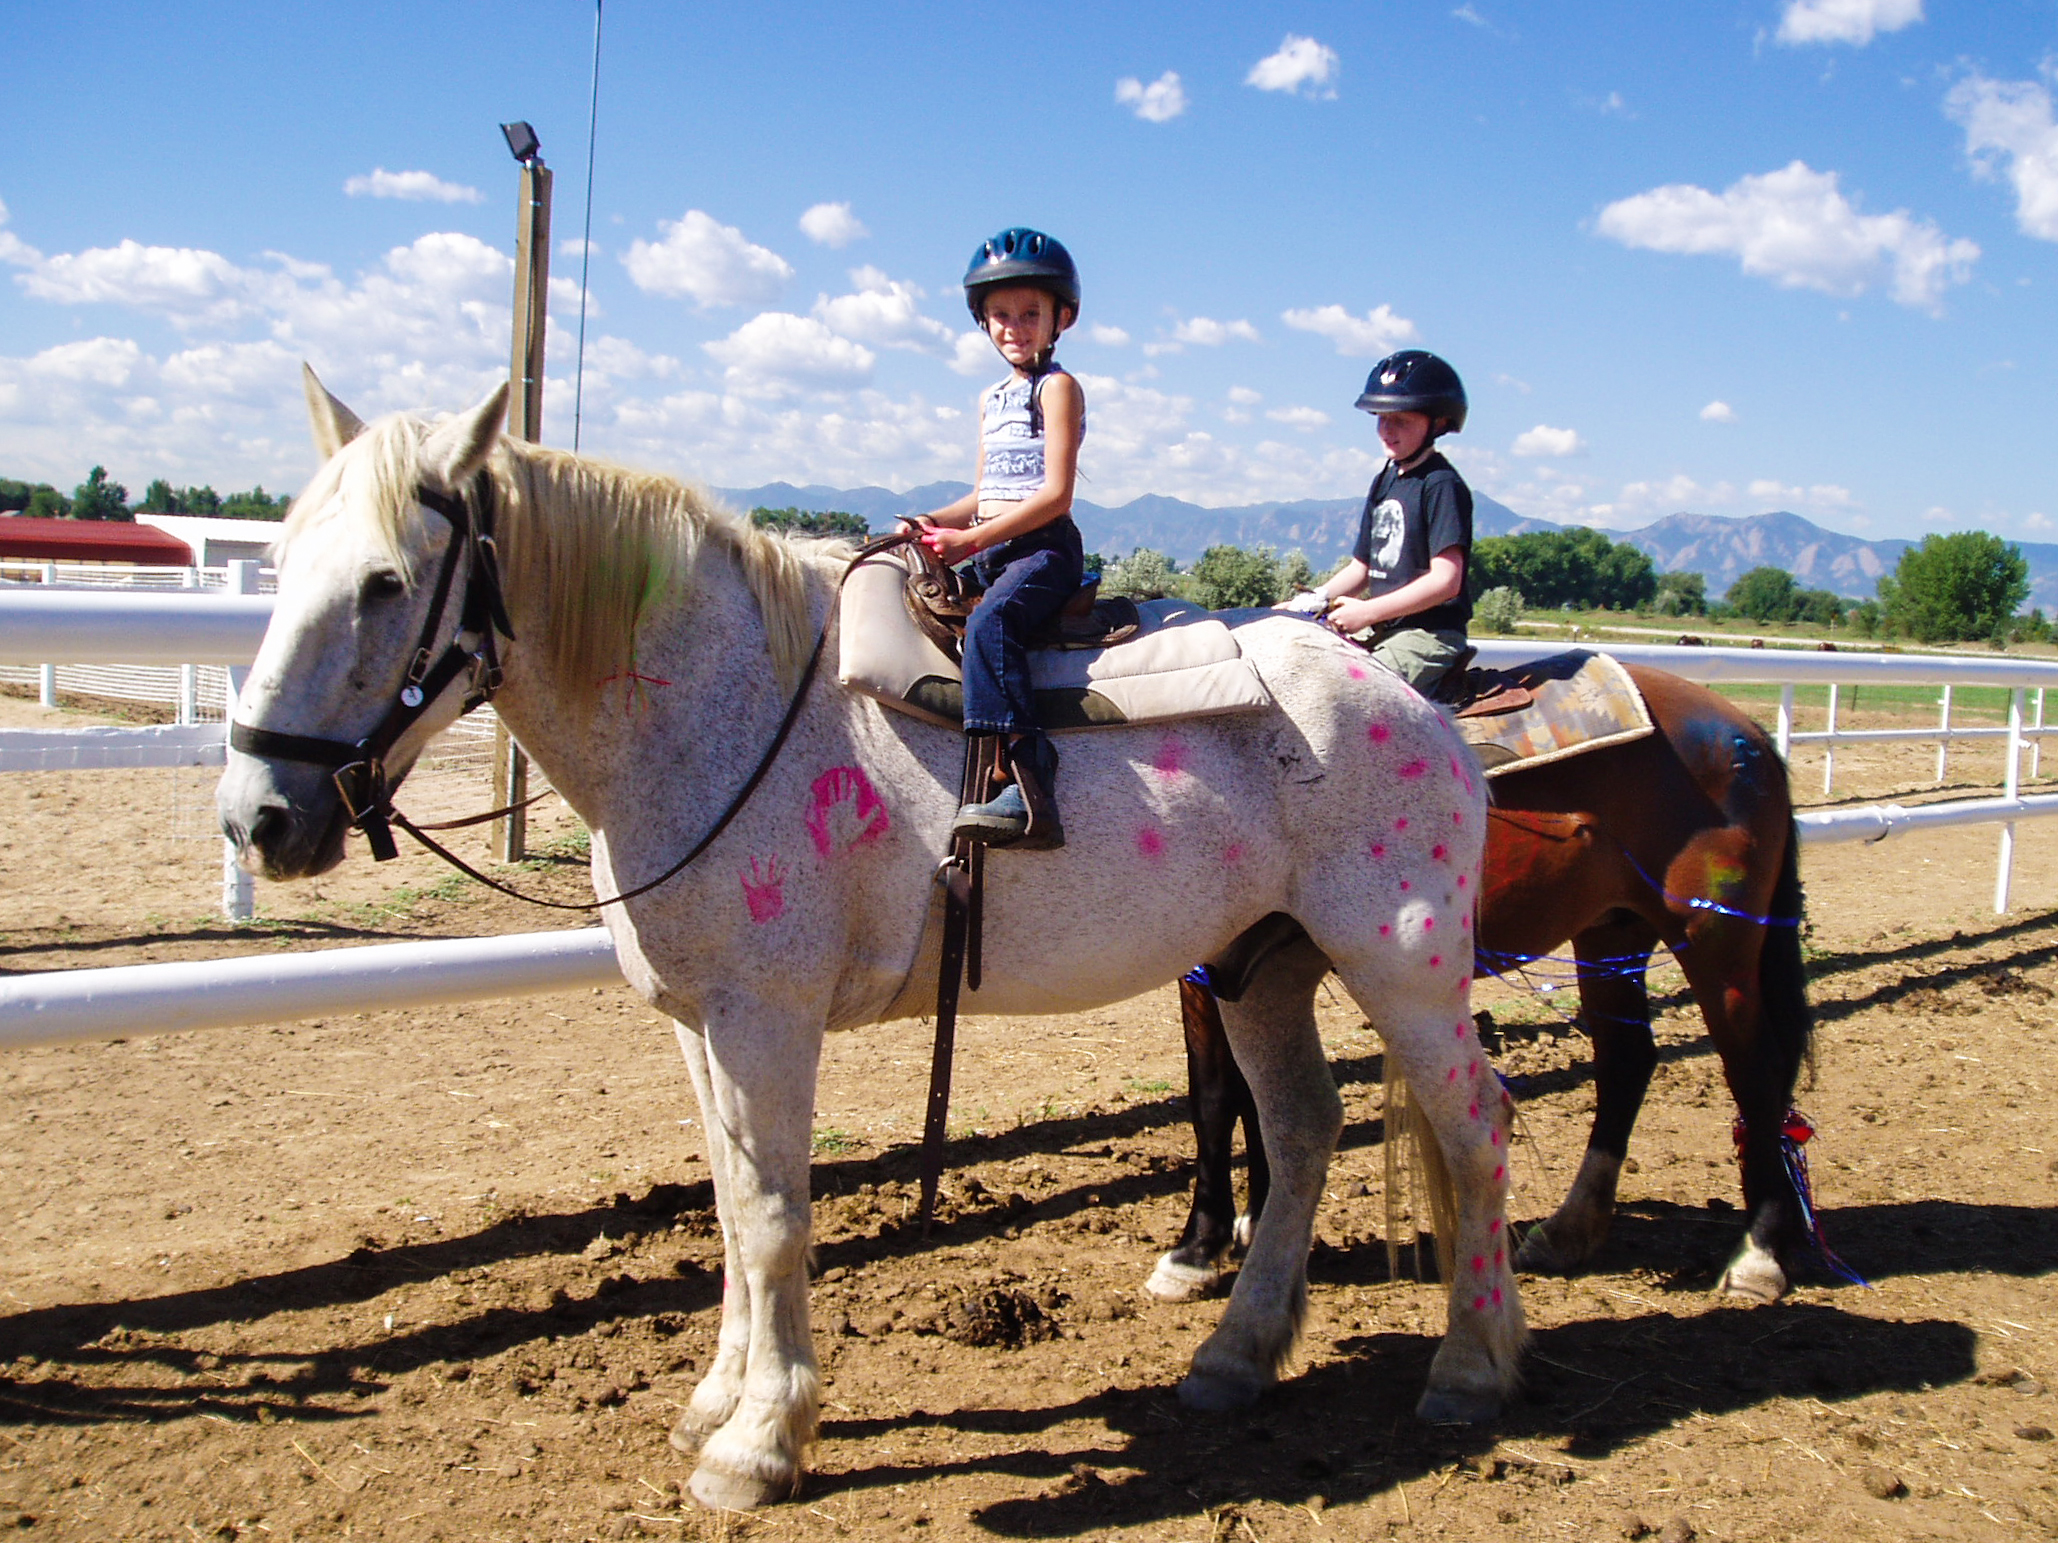 Kids riding painted horses